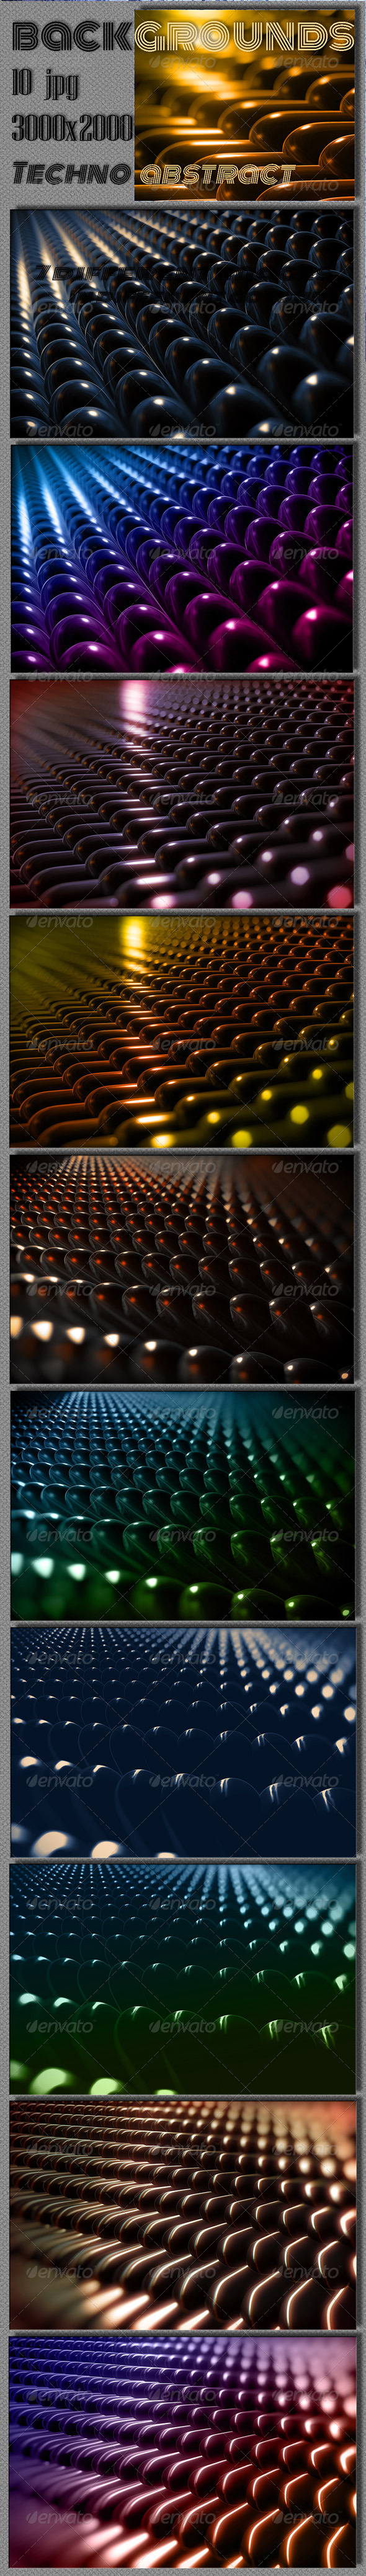 GraphicRiver Techno 3D Capsule Backgrounds 6894159